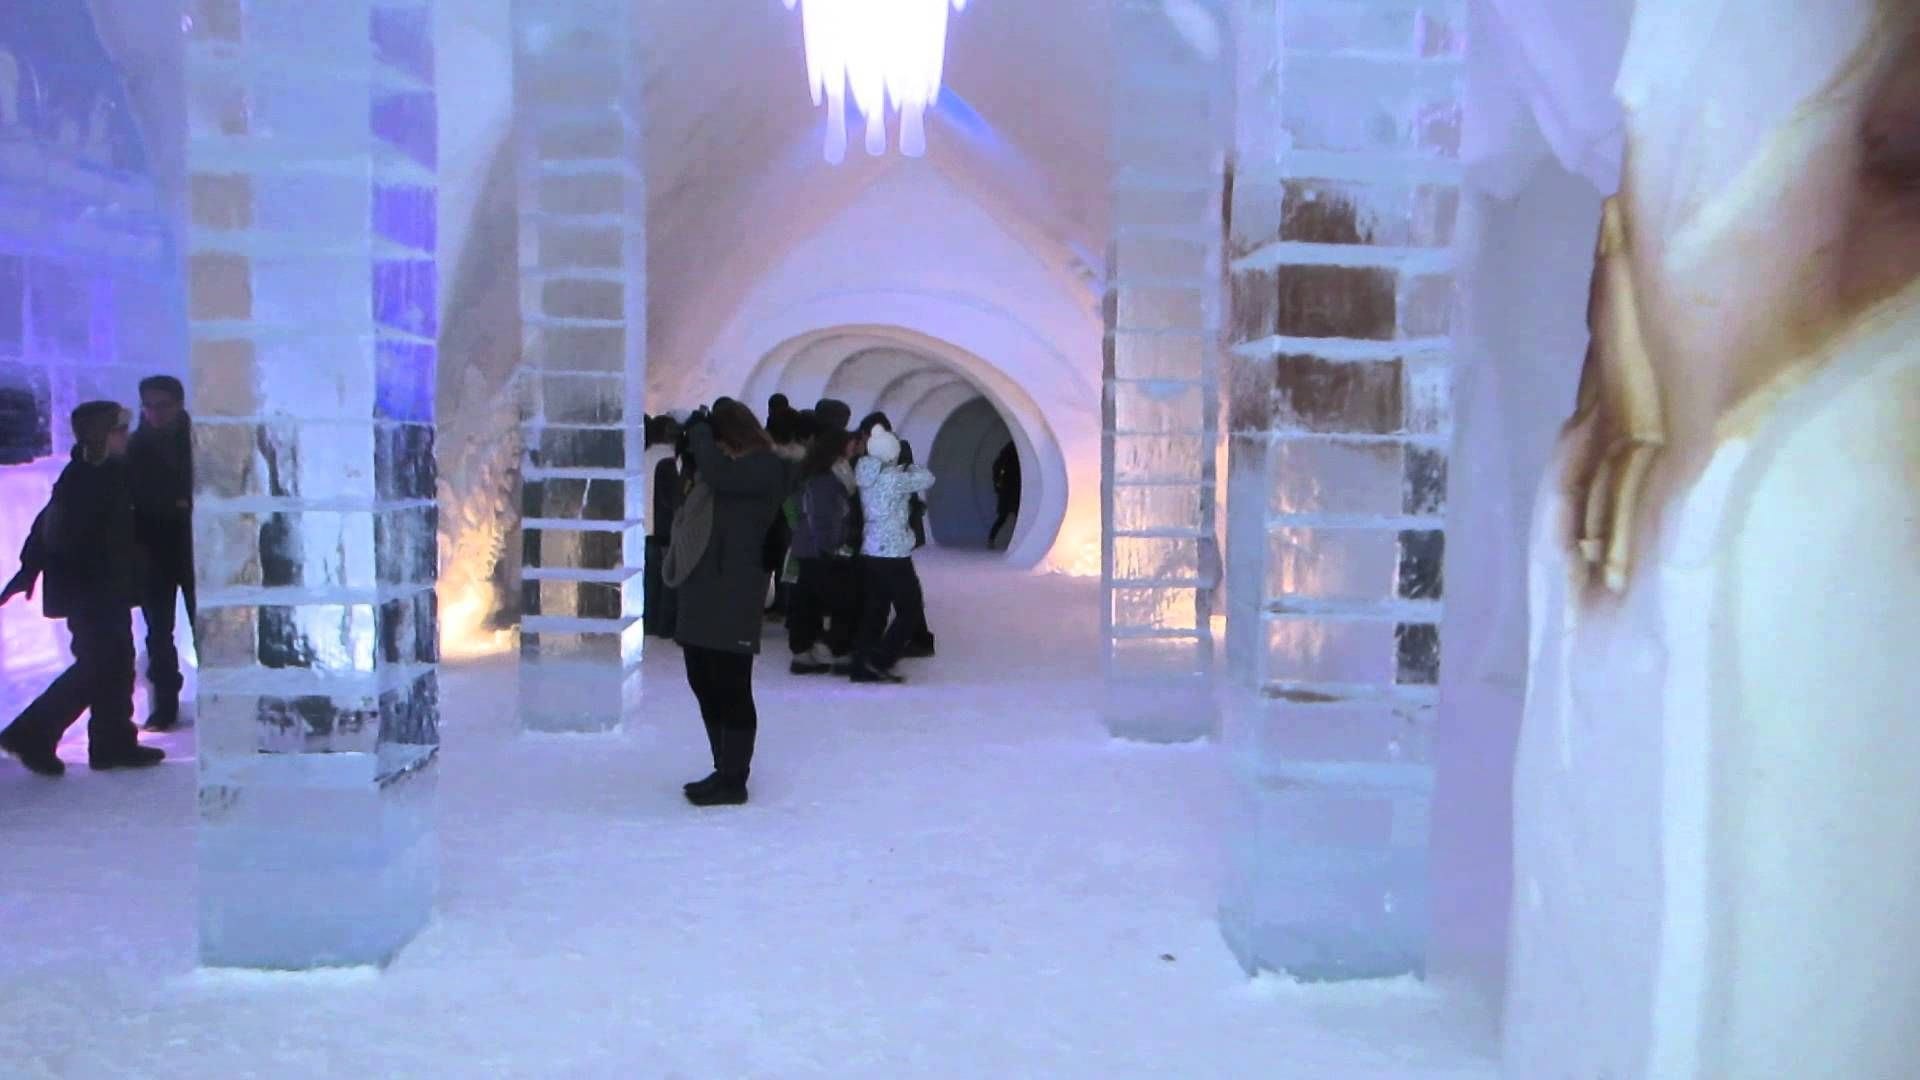 The Hôtel de Glace / The Ice Hotel walk through in Québec Canada on ice hotels in usa, montreal quebec canada, travel quebec canada, plains of abraham quebec canada, christmas in quebec canada, map of quebec canada, ice hotel quebec winter carnival, northern lights quebec canada, winter quebec canada, ice village canada, fishing quebec canada, tourist attractions in winnipeg canada, province of quebec canada, luxury hotels in quebec canada, quebec quebec canada, banff springs hotel alberta canada, ice hotel in quebec, quebec city canada, gaspe peninsula quebec canada, ice hotel quebec 2014,